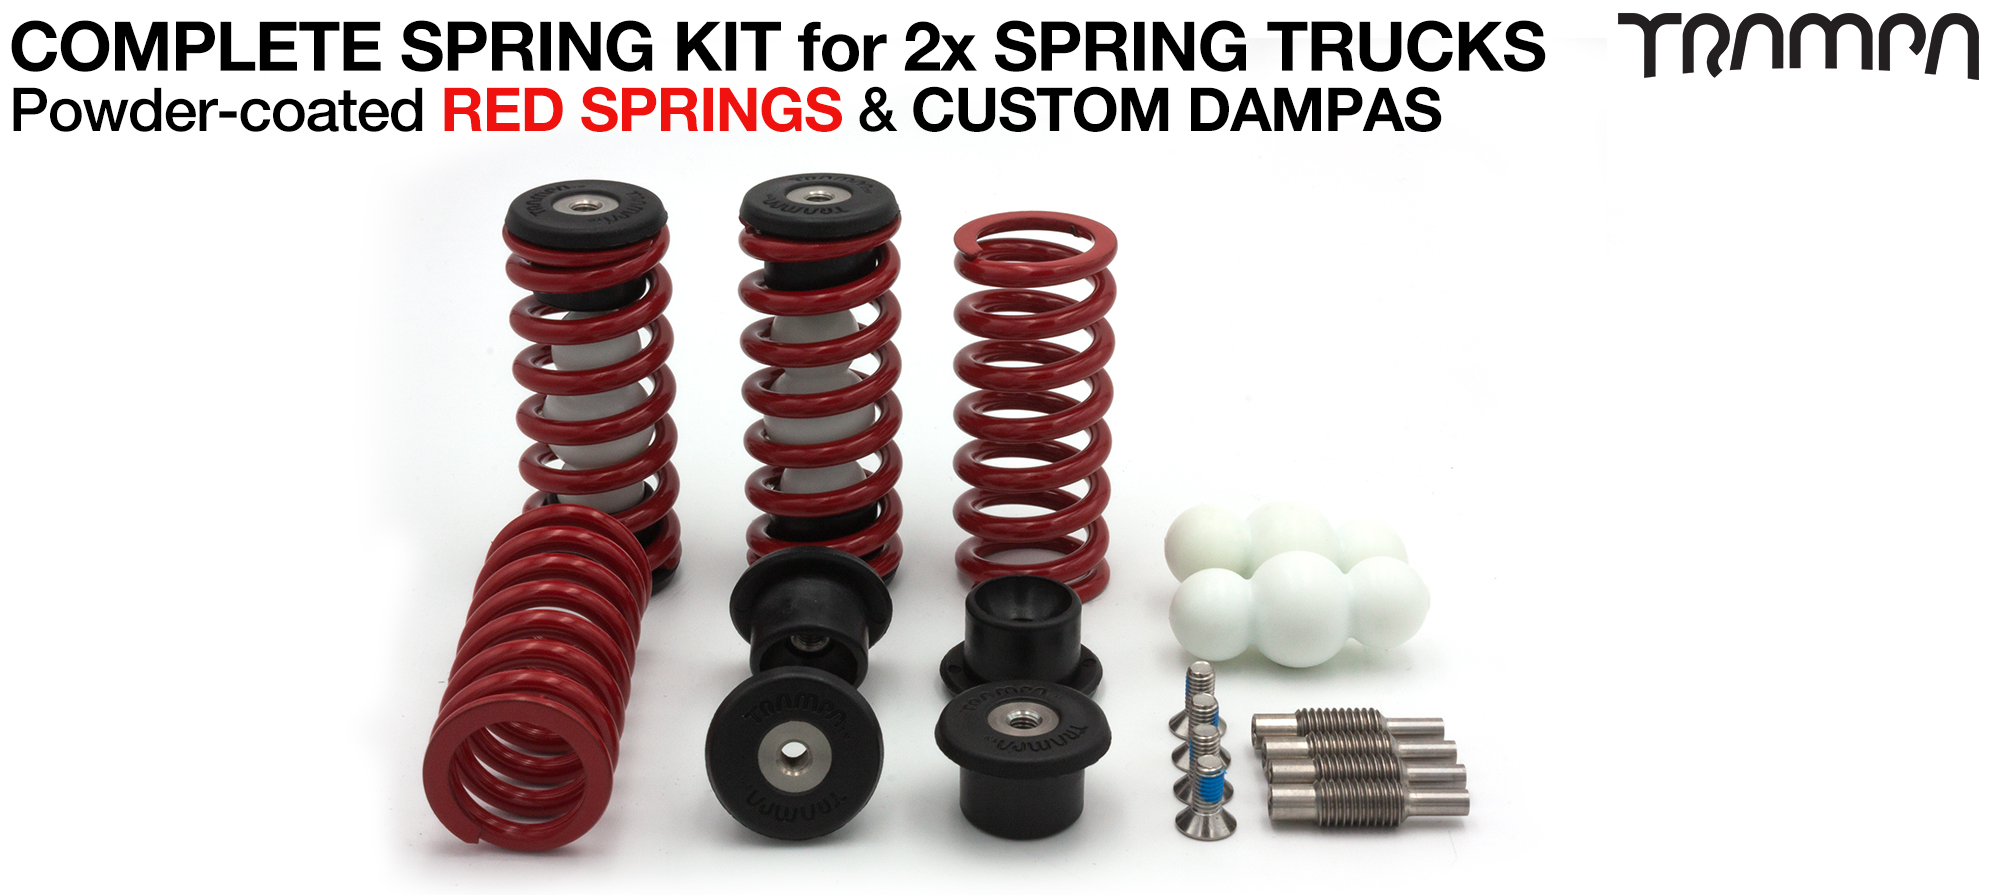 Complete Spring kit for 1x Board = 4x RED Springs 4x Dampa 8x Spring Retainers 4x Spring Adjuster & 4 M5x12mm Countersunk Bolt